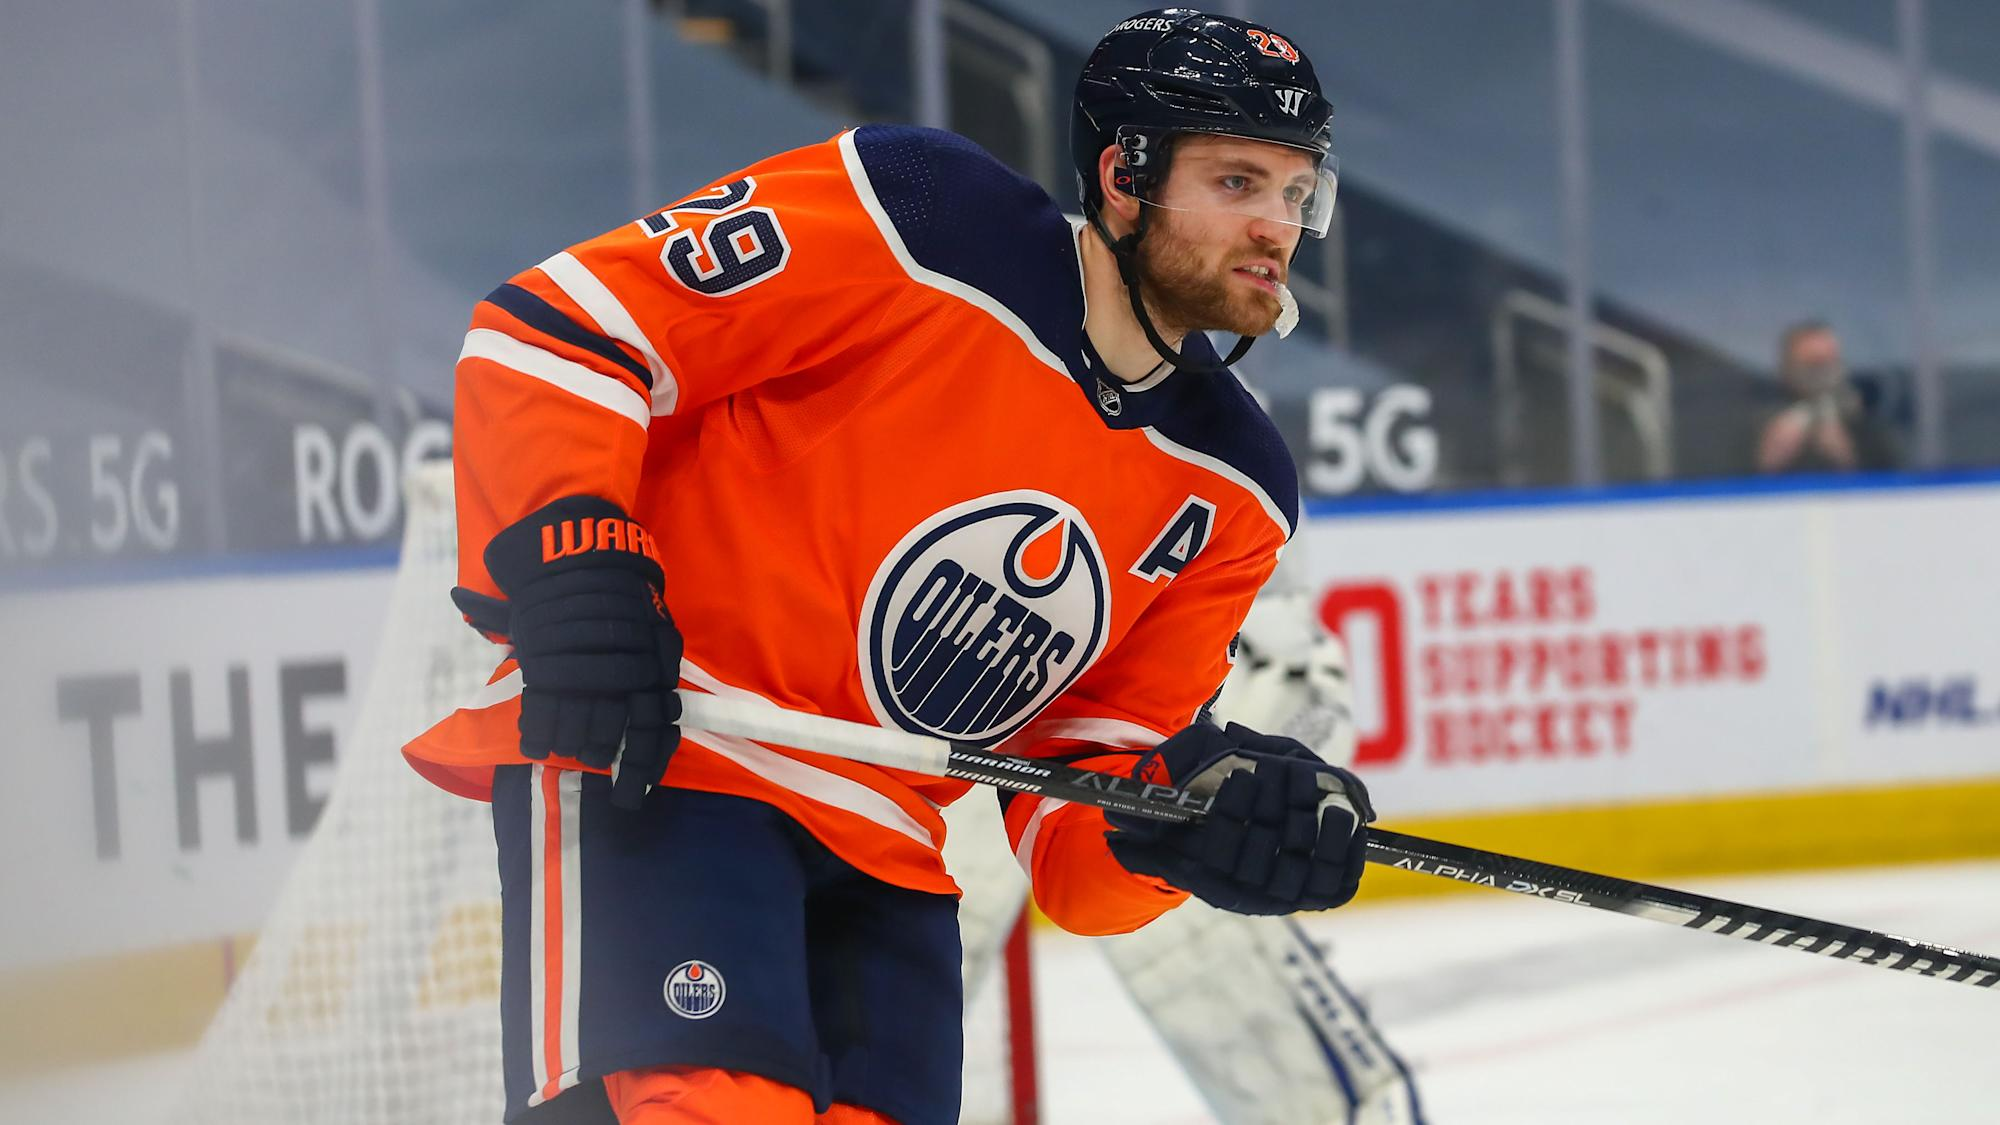 Leon Draisaitl fed up with reporter's question after getting swept by Maple Leafs